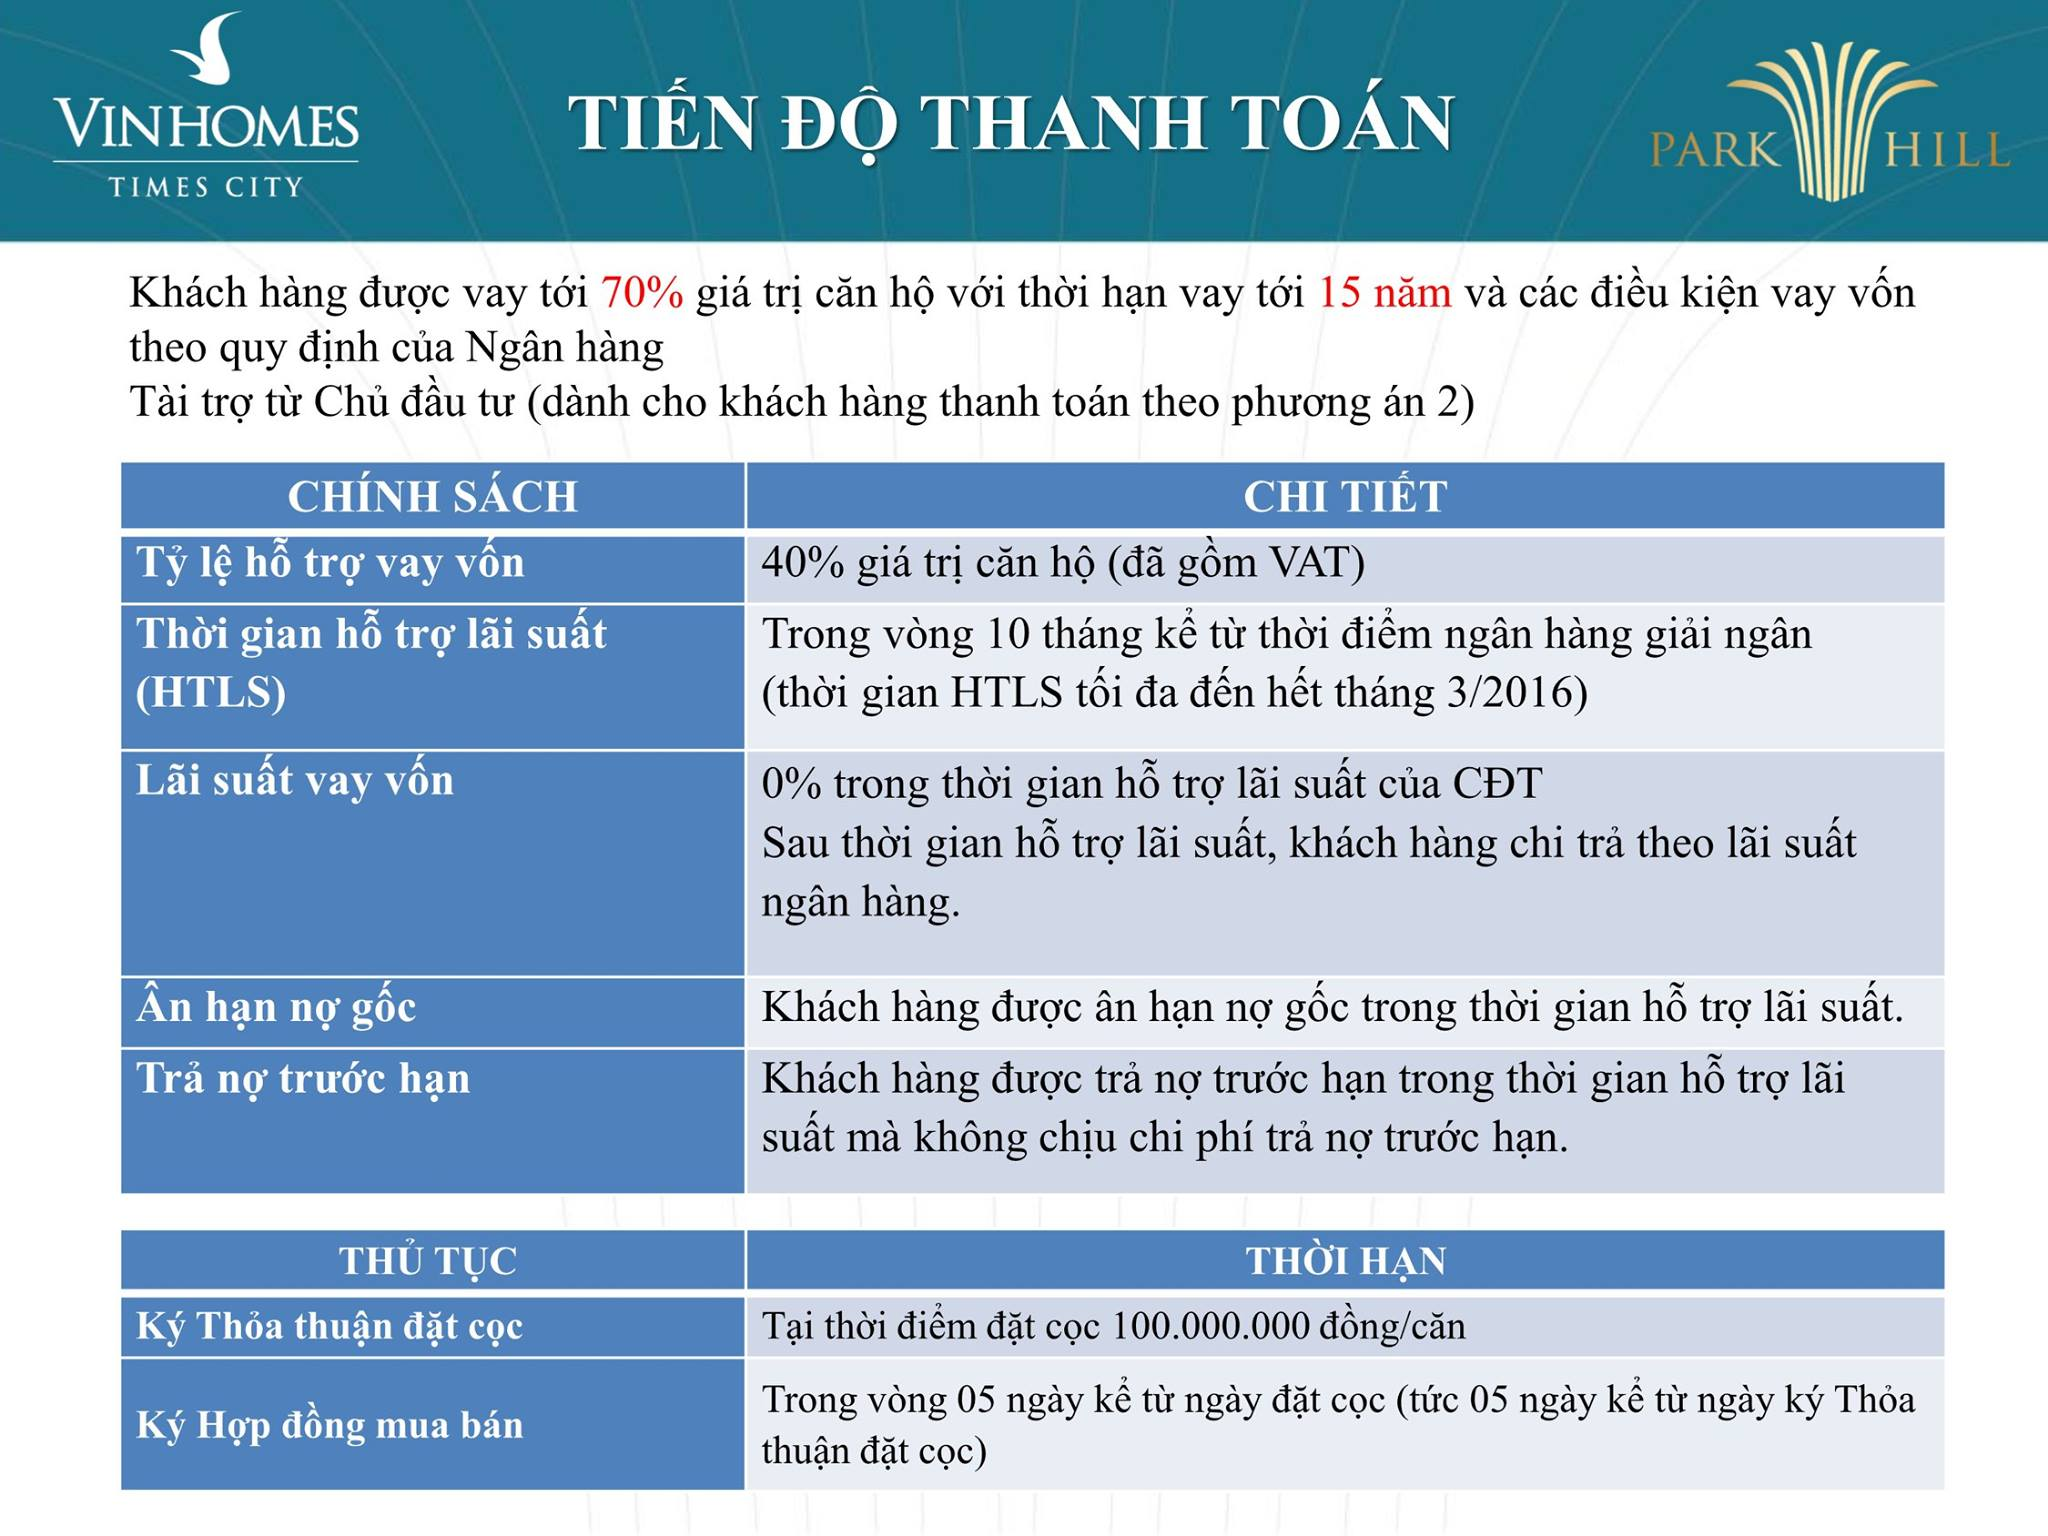 tien-do-thanh-toan  2